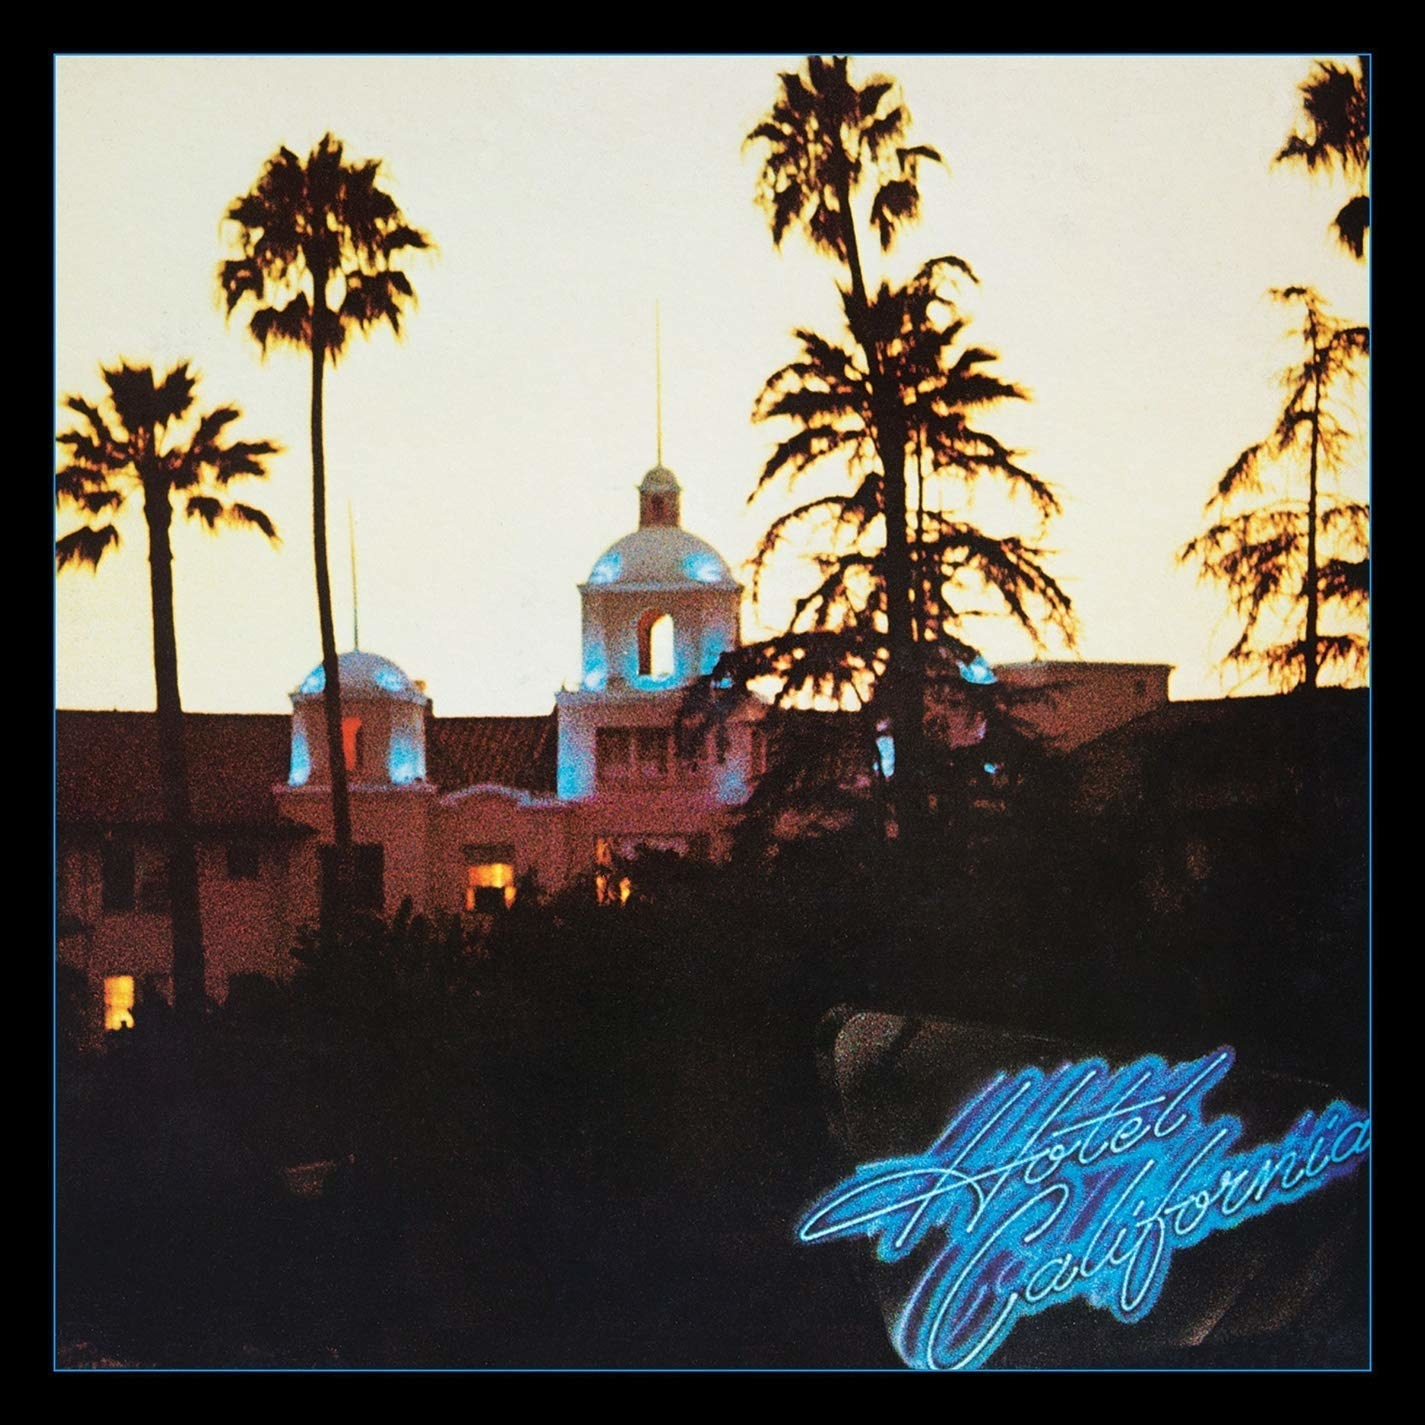 album cover of Hotel California showing a hotel with palm trees in the distance